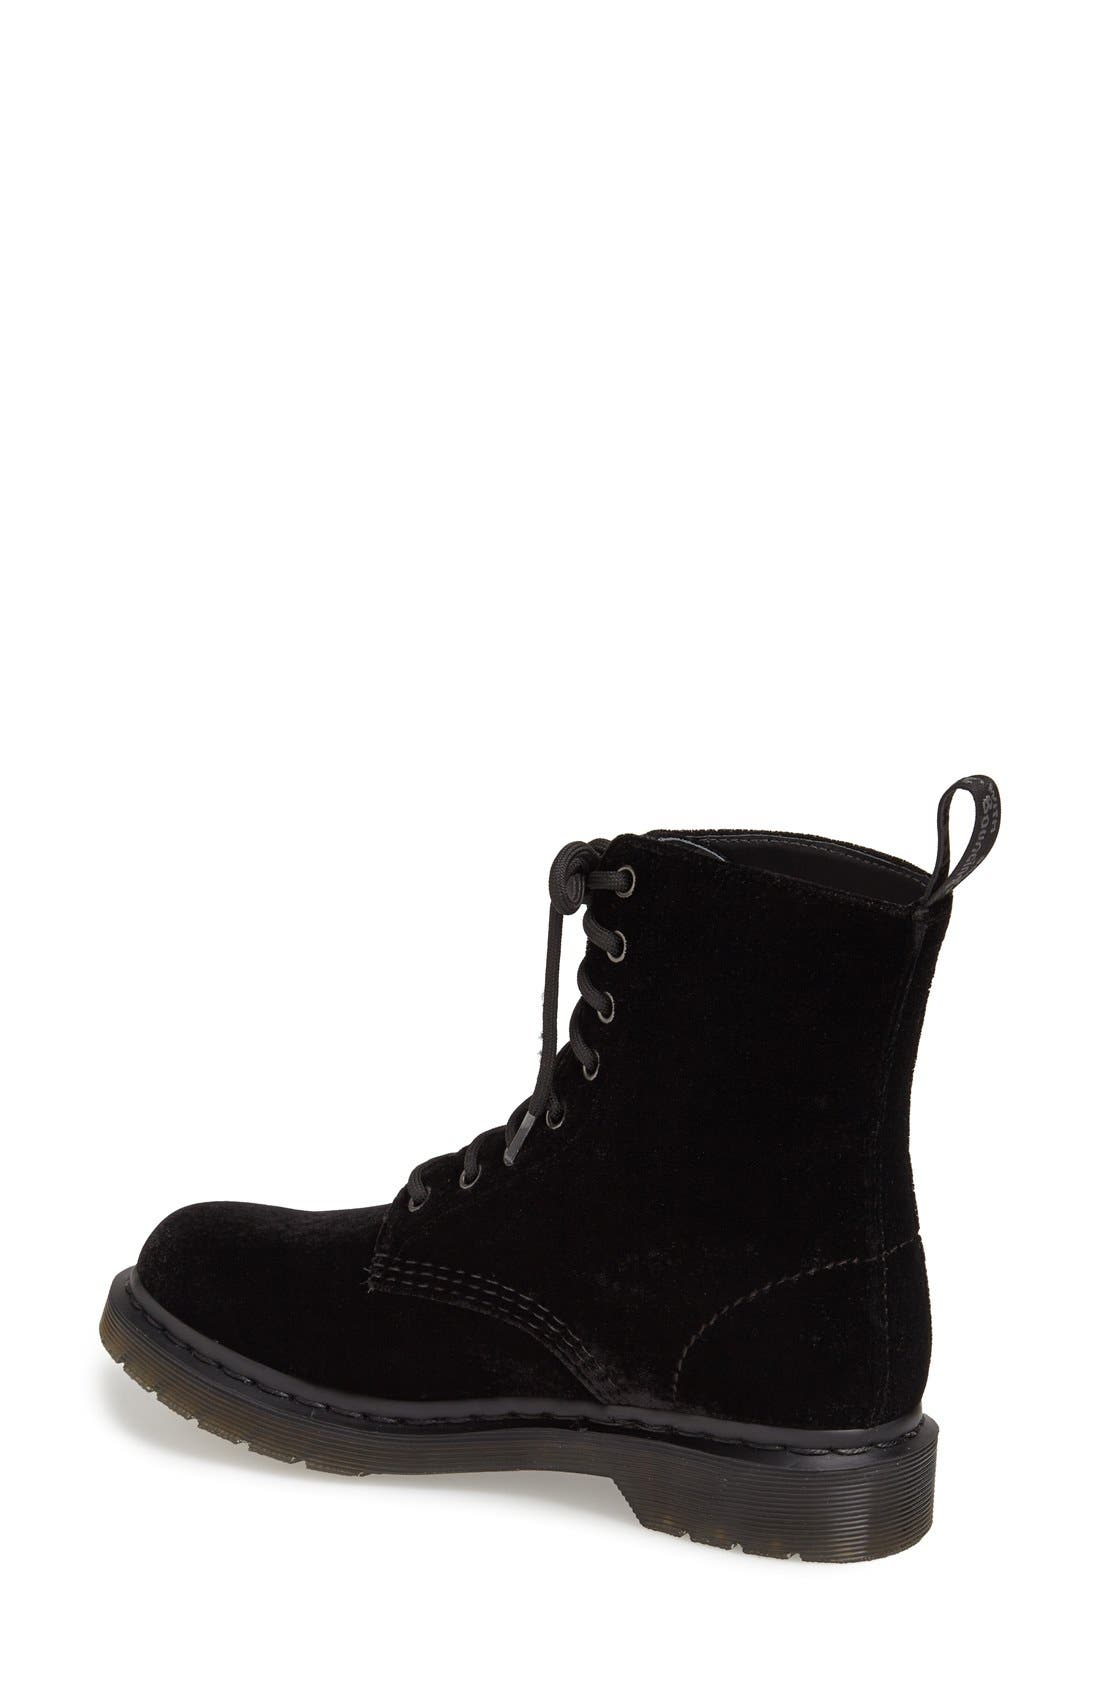 Alternate Image 2  - Dr. Martens 'Page 8-Eye' Velvet Boot (Women)